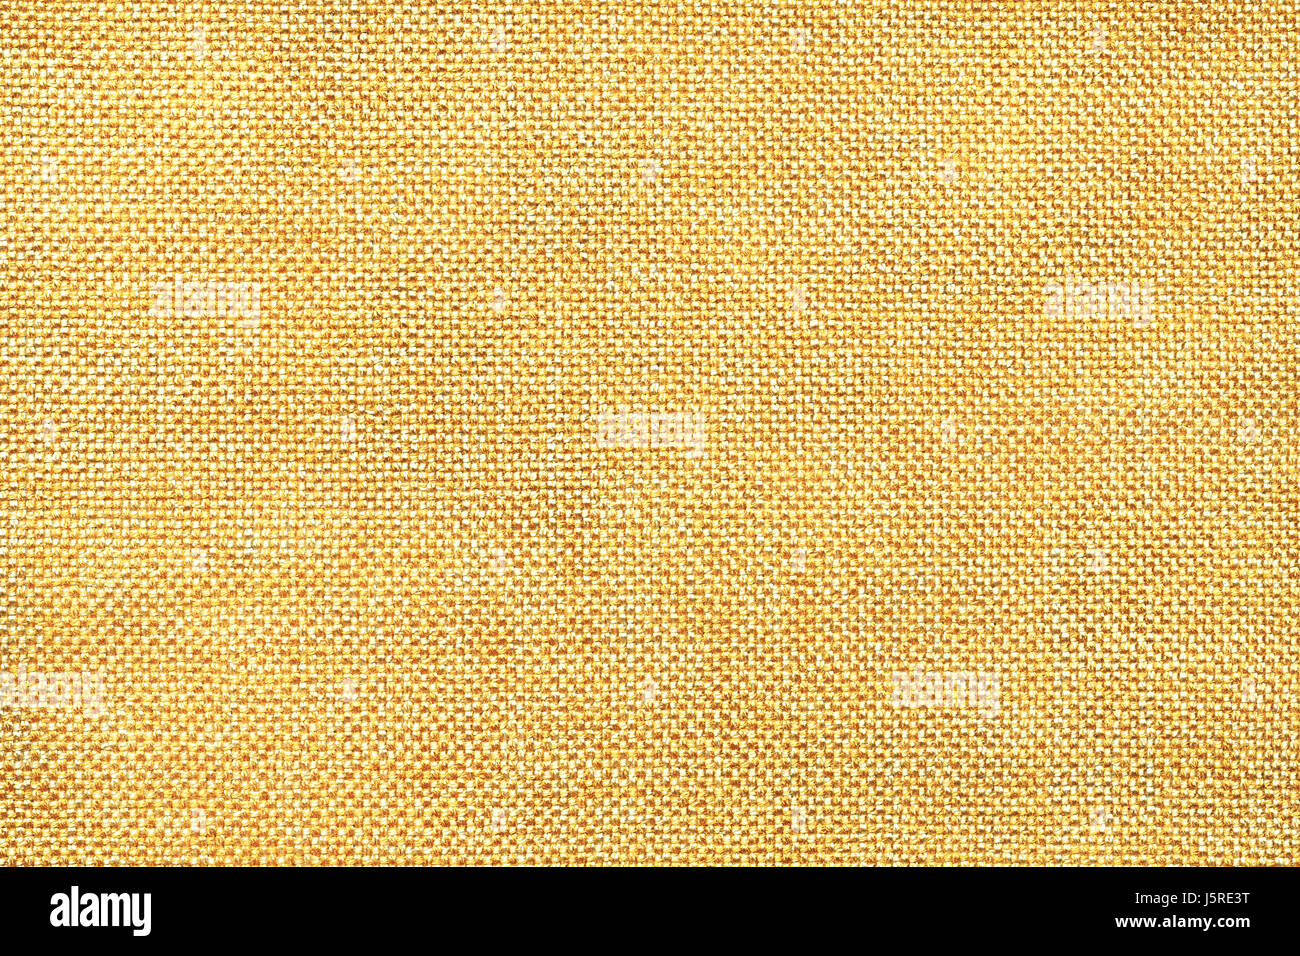 Light yellow and white background of dense woven bagging fabric ...